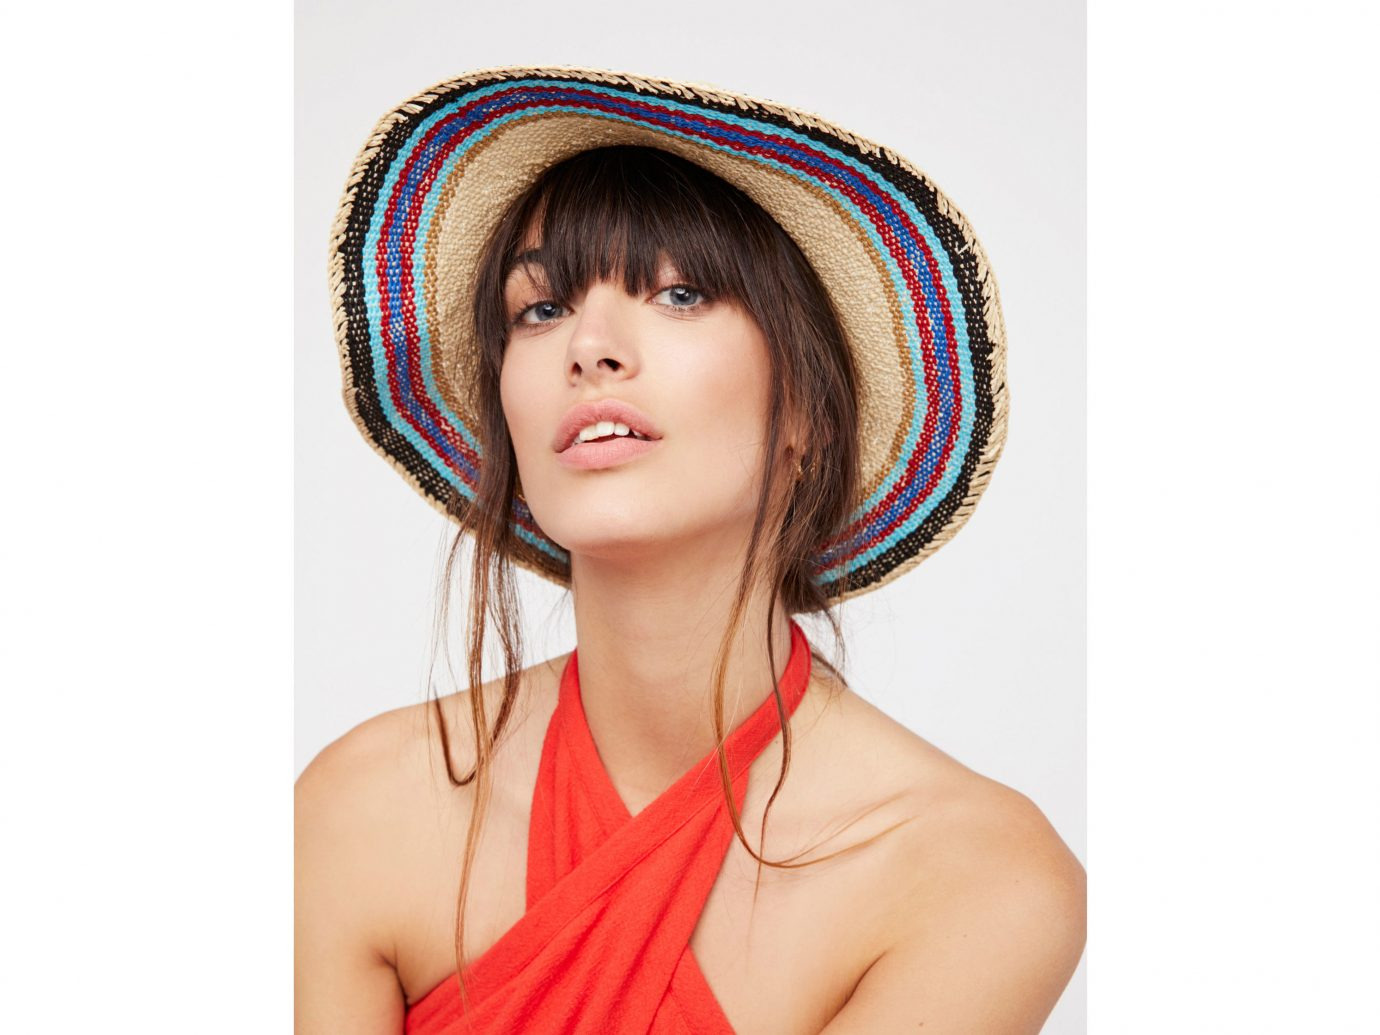 Cruise Travel Style + Design person hair clothing face wearing hairstyle fashion accessory long hair costume cap posing headgear hair accessory pattern veil dressed